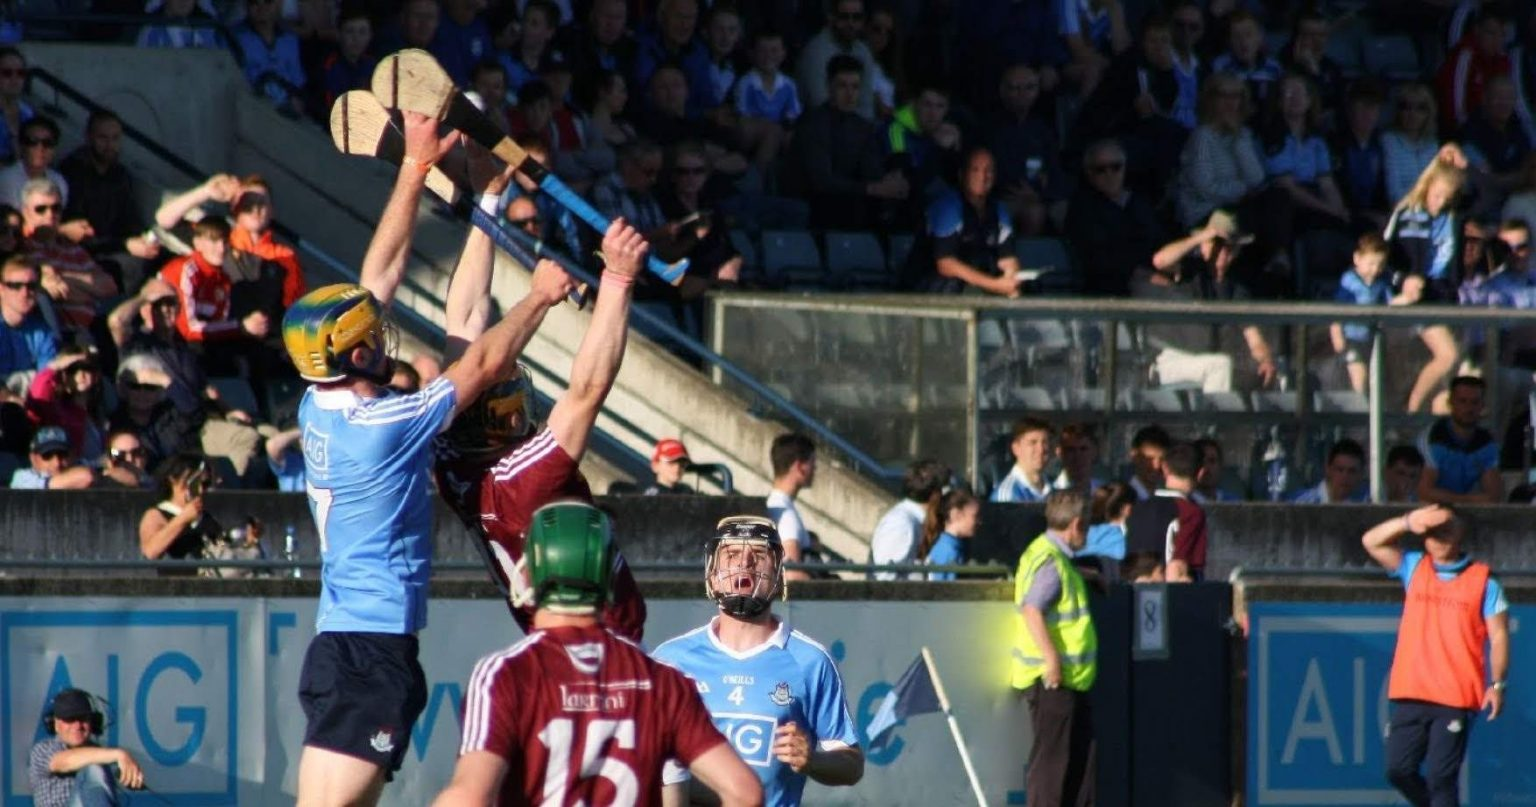 Dublin U21 Hurlers Chosen For Leinster Quarter Final Clash With Westmeath